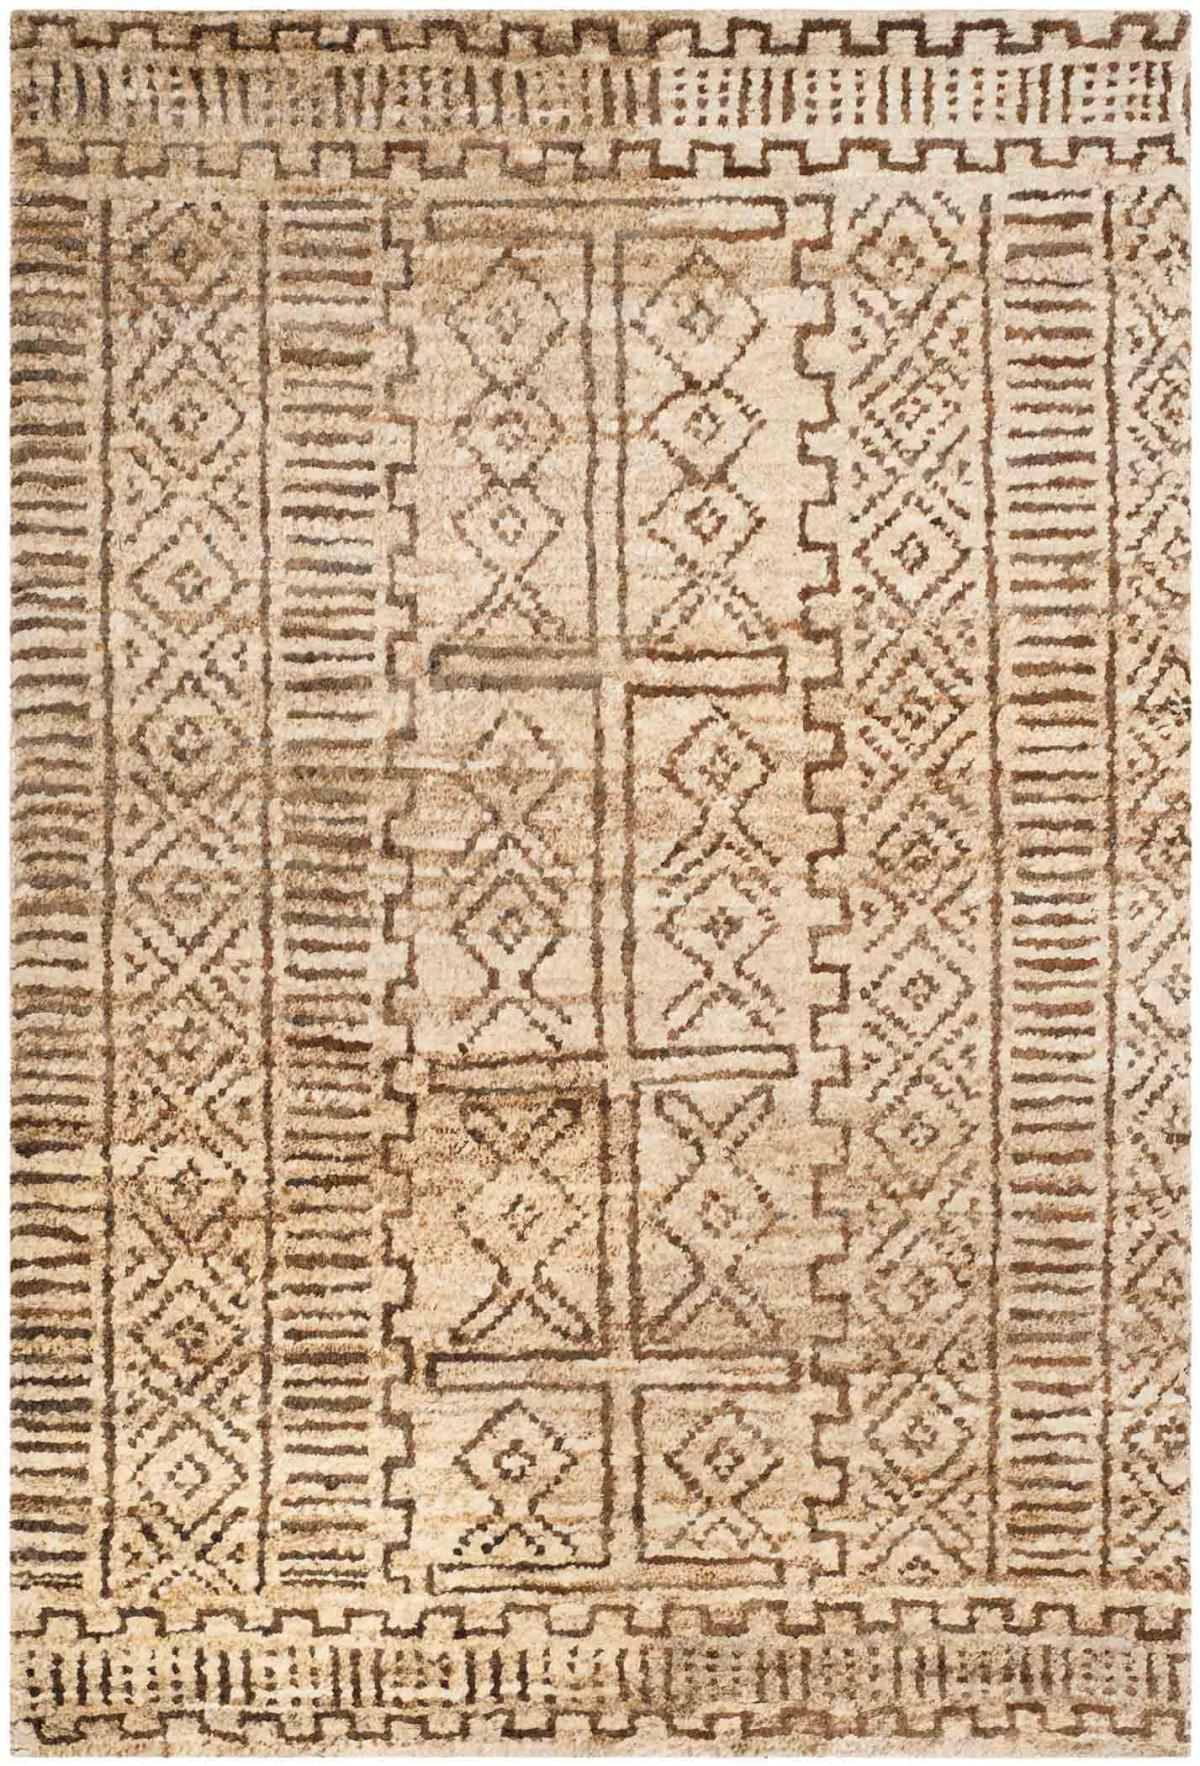 Rlr5112b Kenya Rug From Ralph Lauren Collection A Tribal Patterned Area Inspired By Authentic